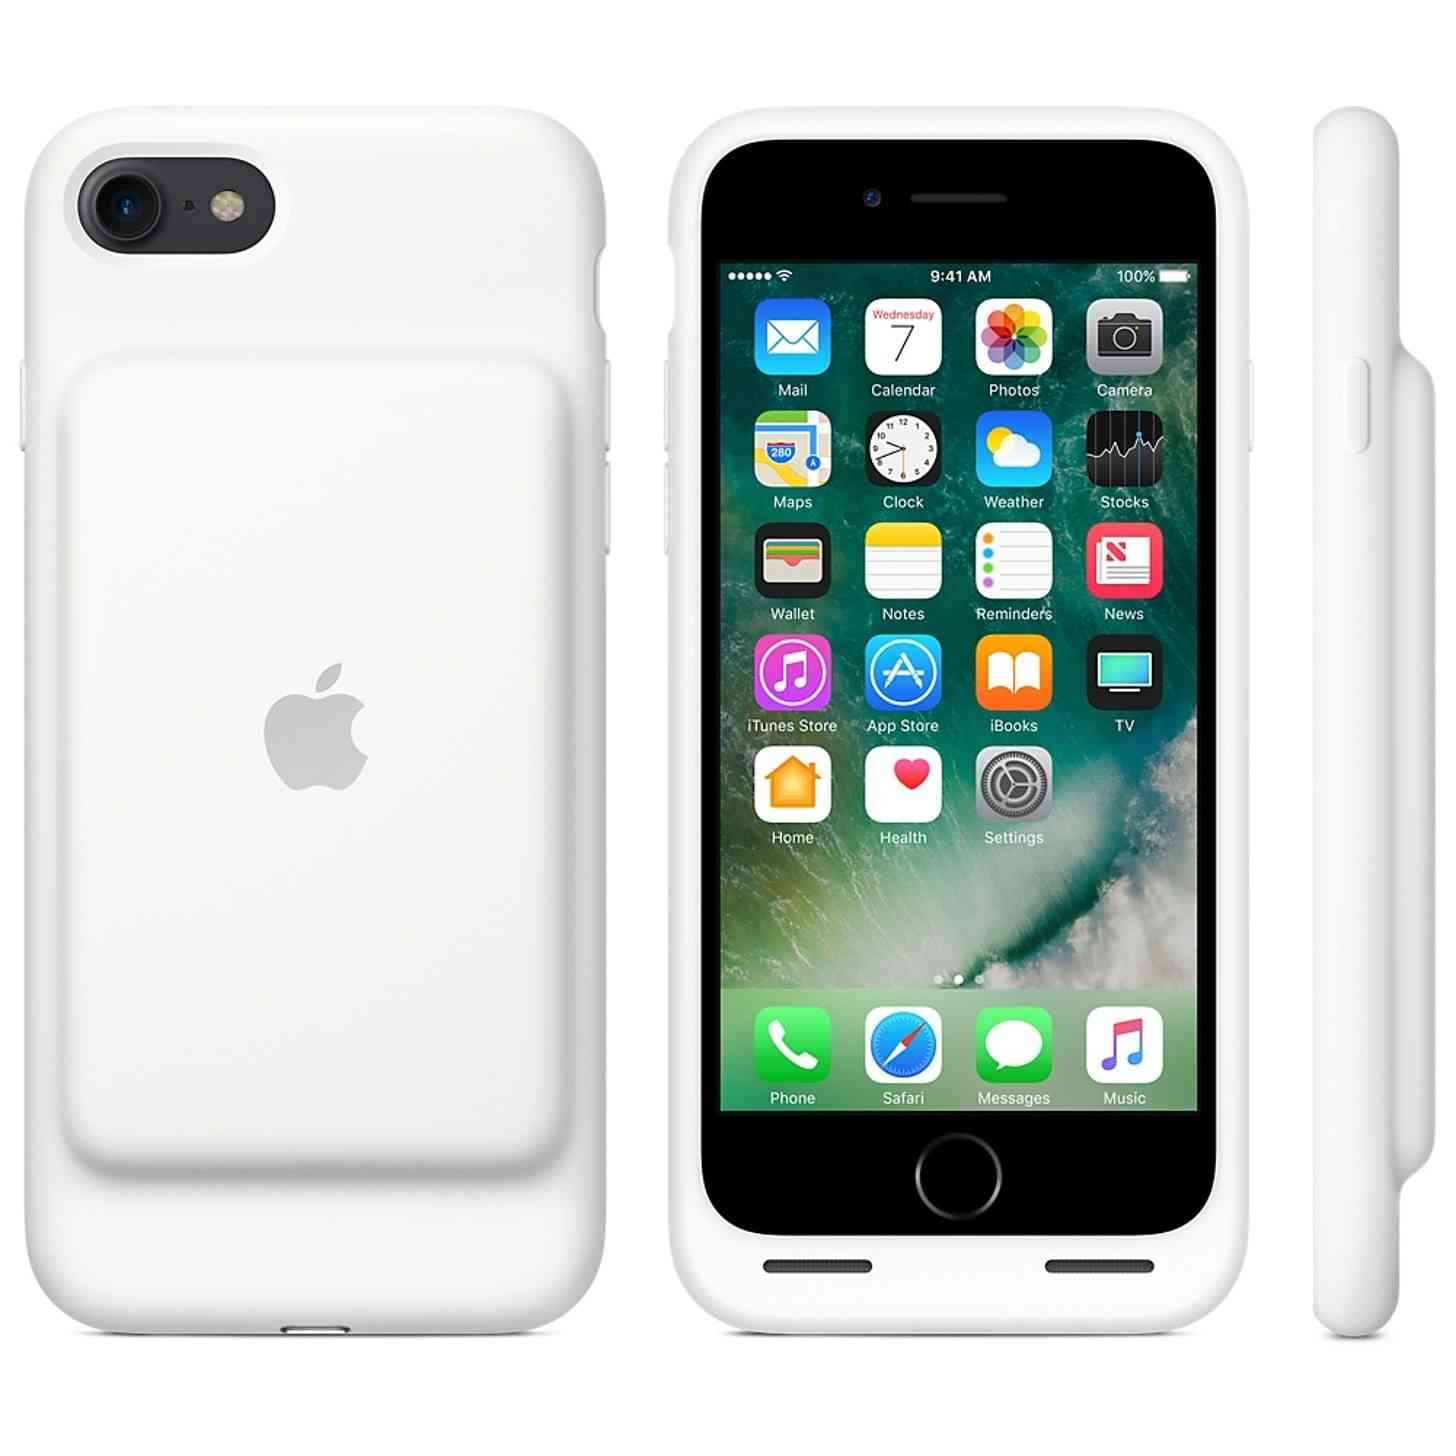 promo code e7cc4 f3051 Two years later, Apple's Smart Battery Case is still one of my ...